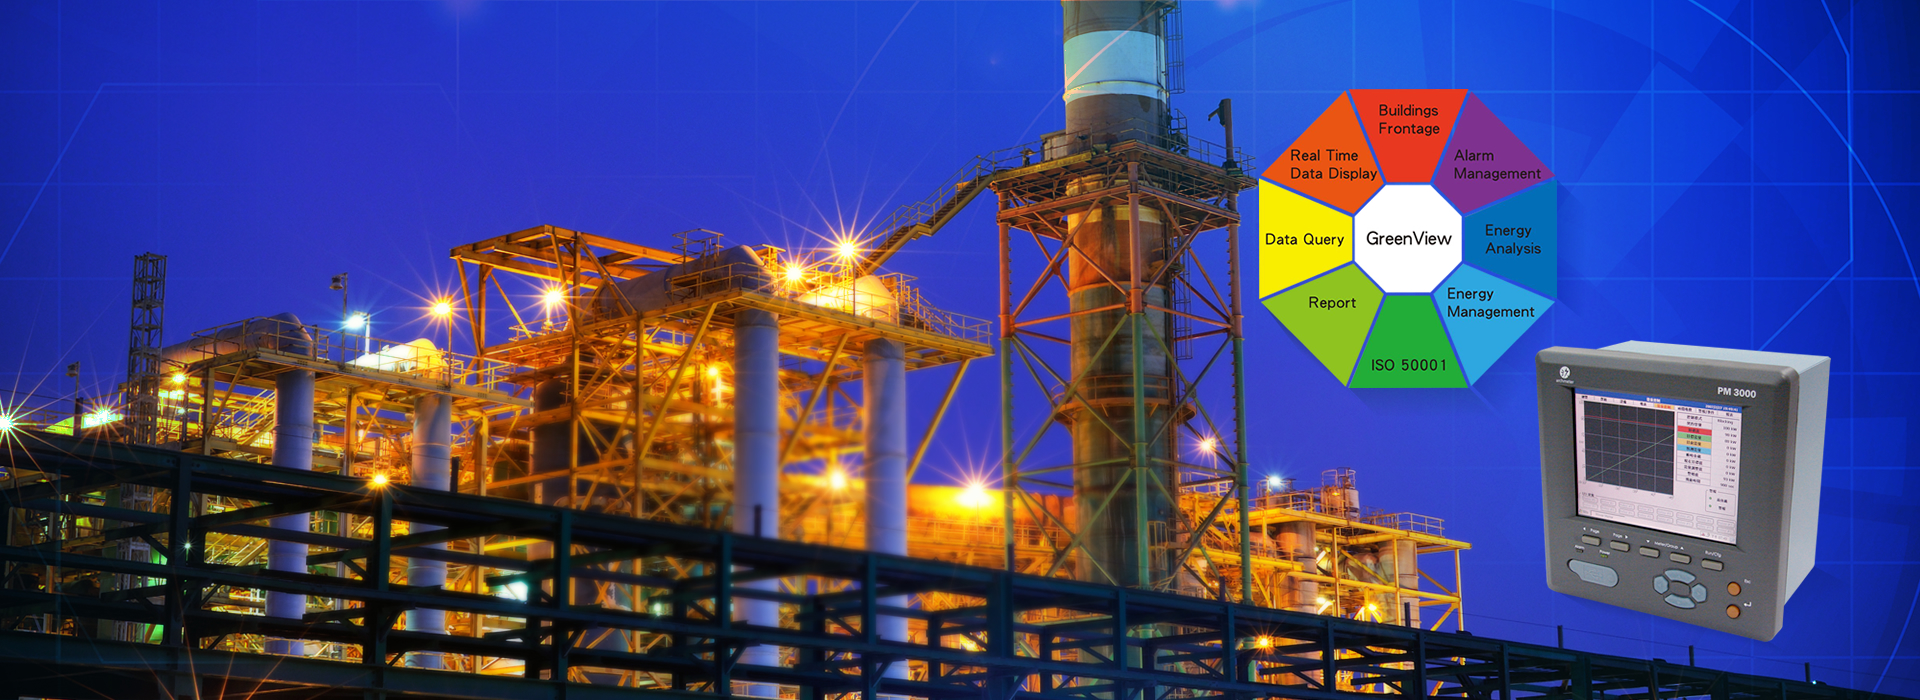 Your Best Partner of Energy Management Solution provides sophisticate analysis in energy management